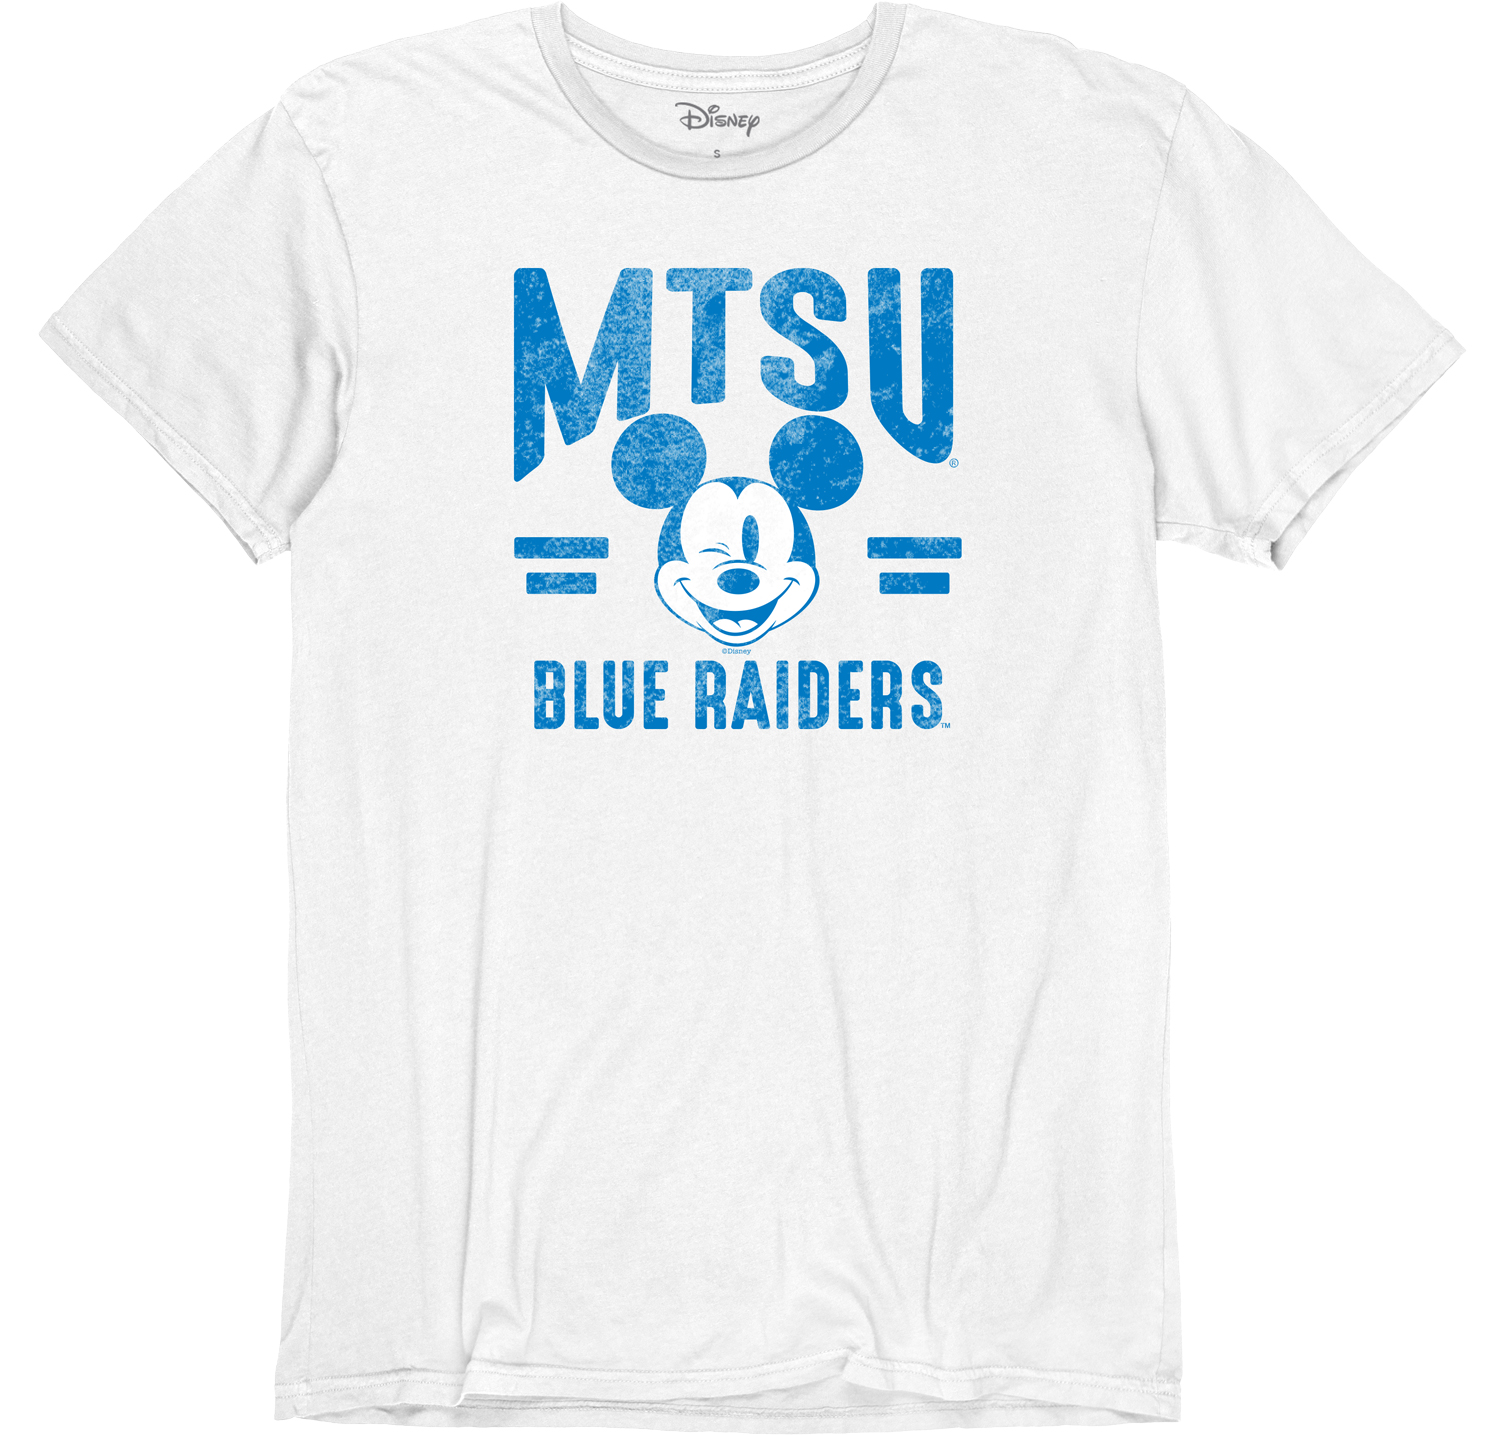 MTSU Between the Lines Mickey Vintage Basic Shirt